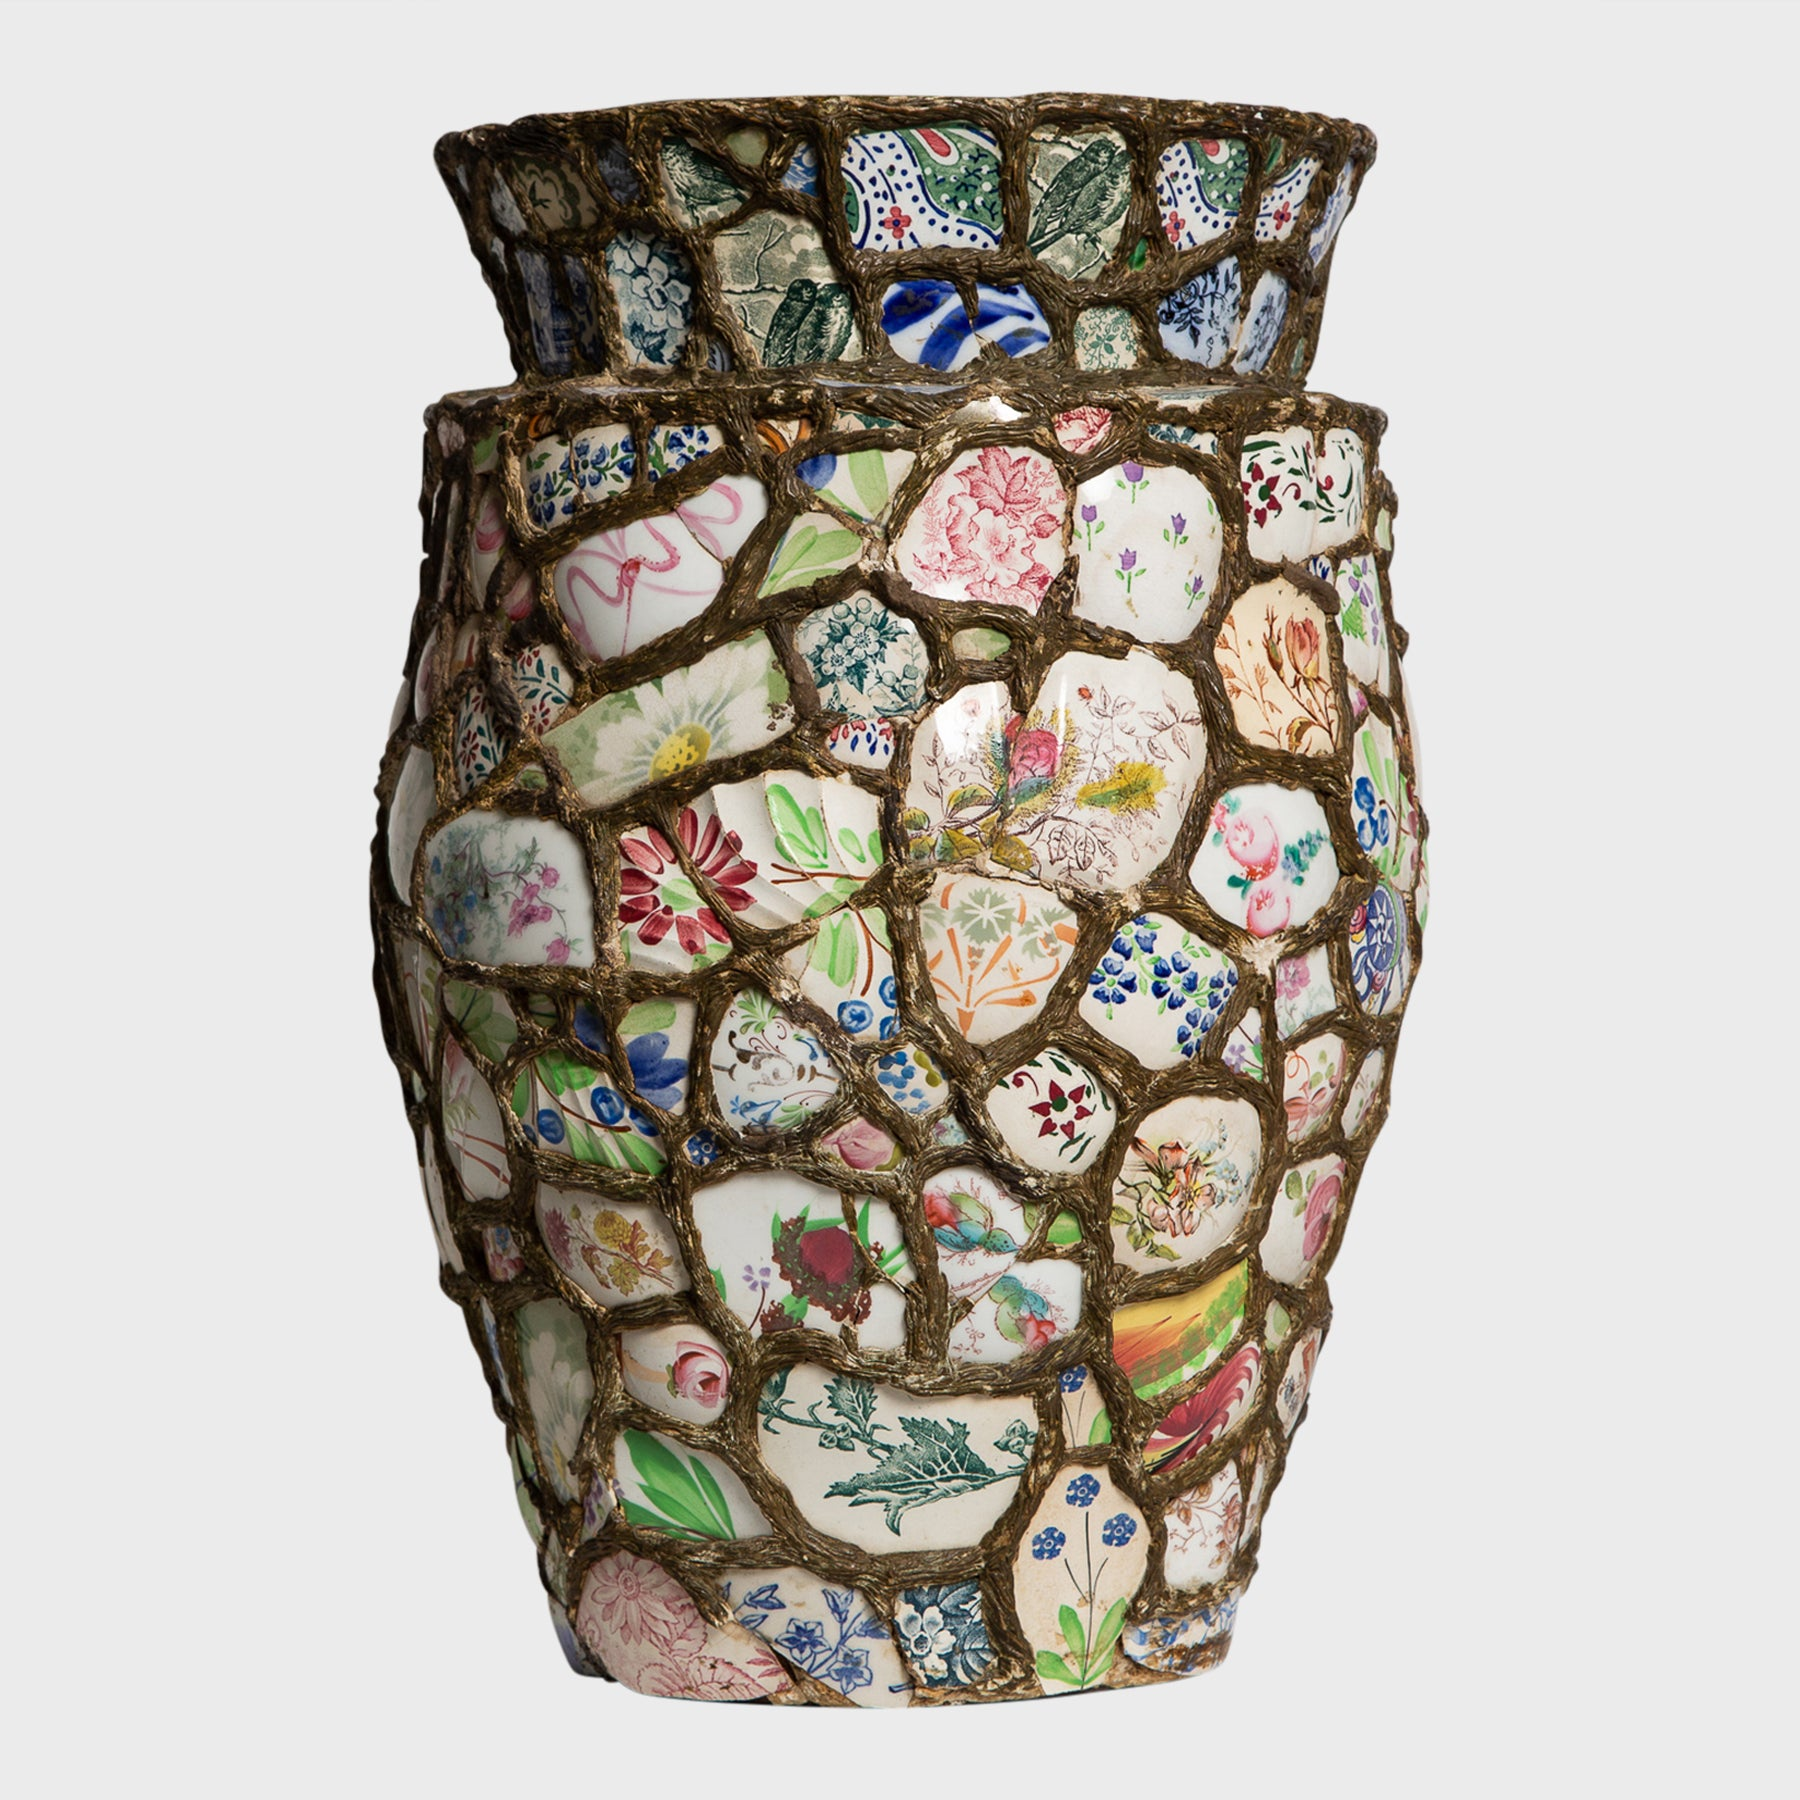 MAXFIELD PRIVATE COLLECTION  | C.1910 PIQUE ASSIETTE WIDE VASE